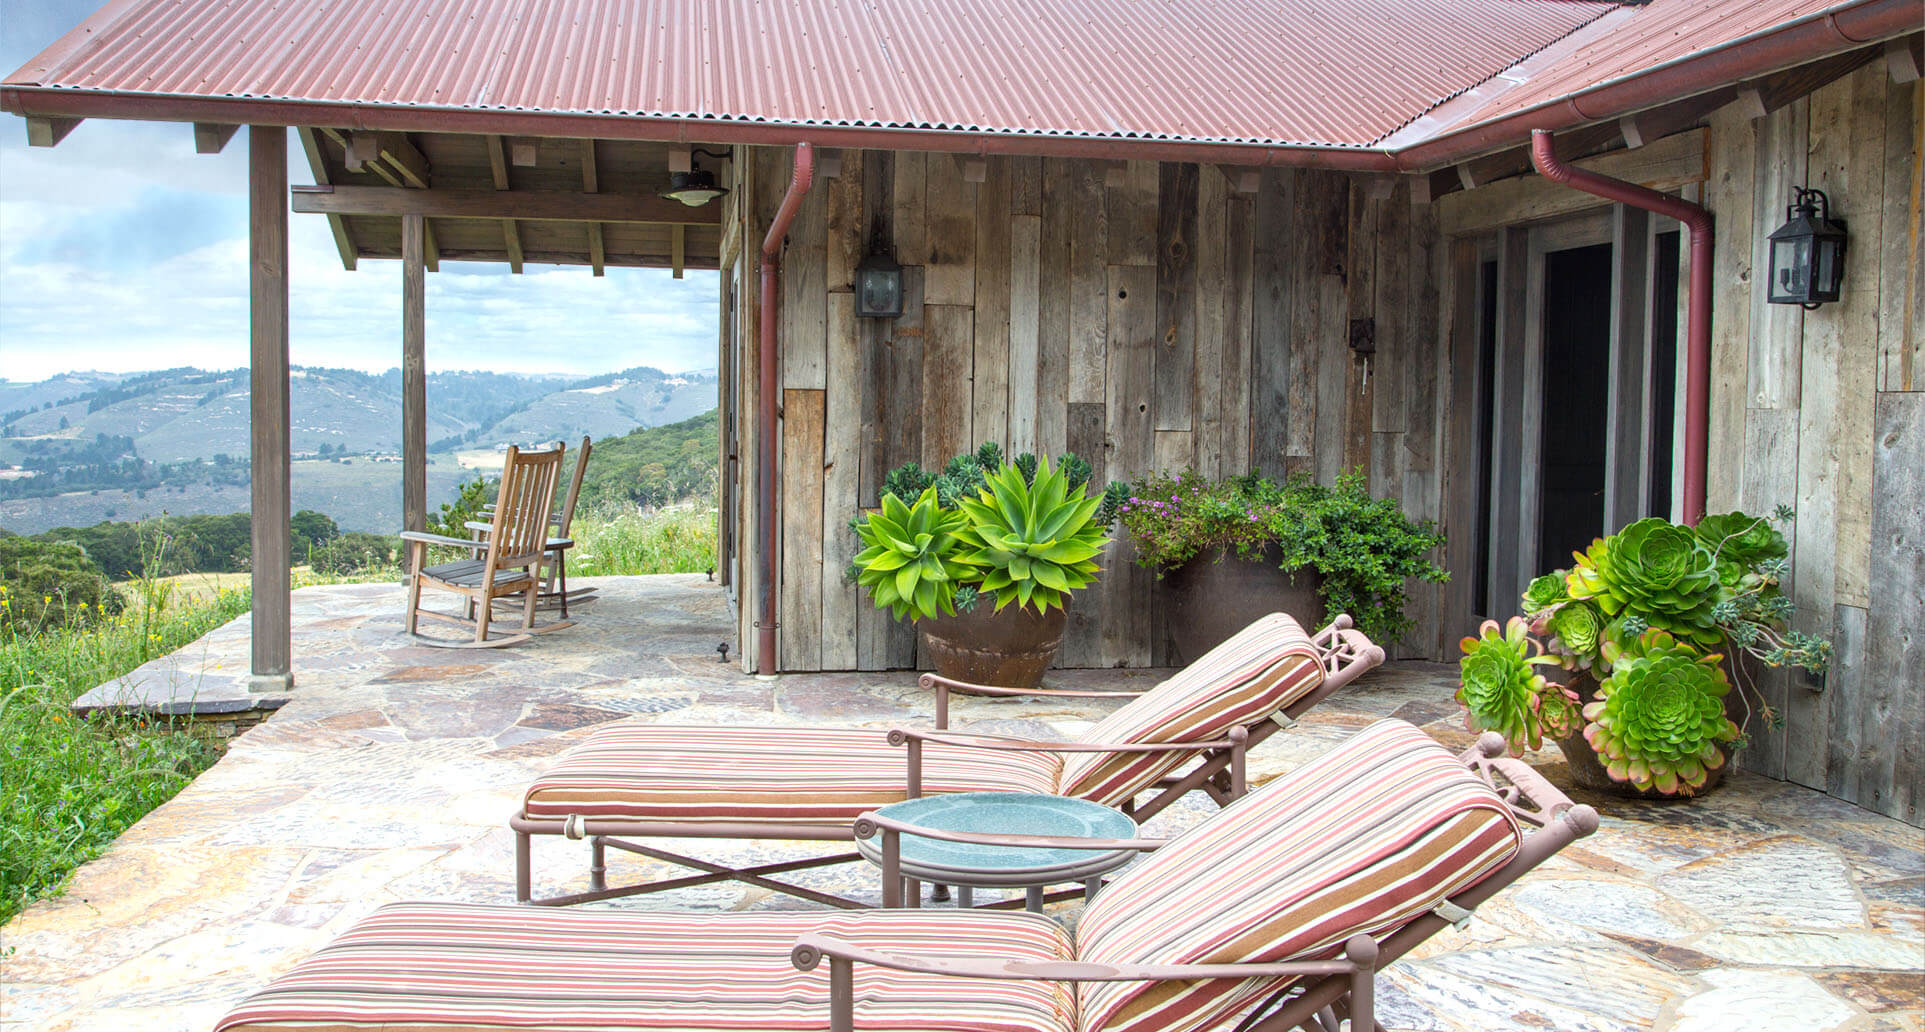 Rustic-Garden-3-Lounge-Chairs-Agave